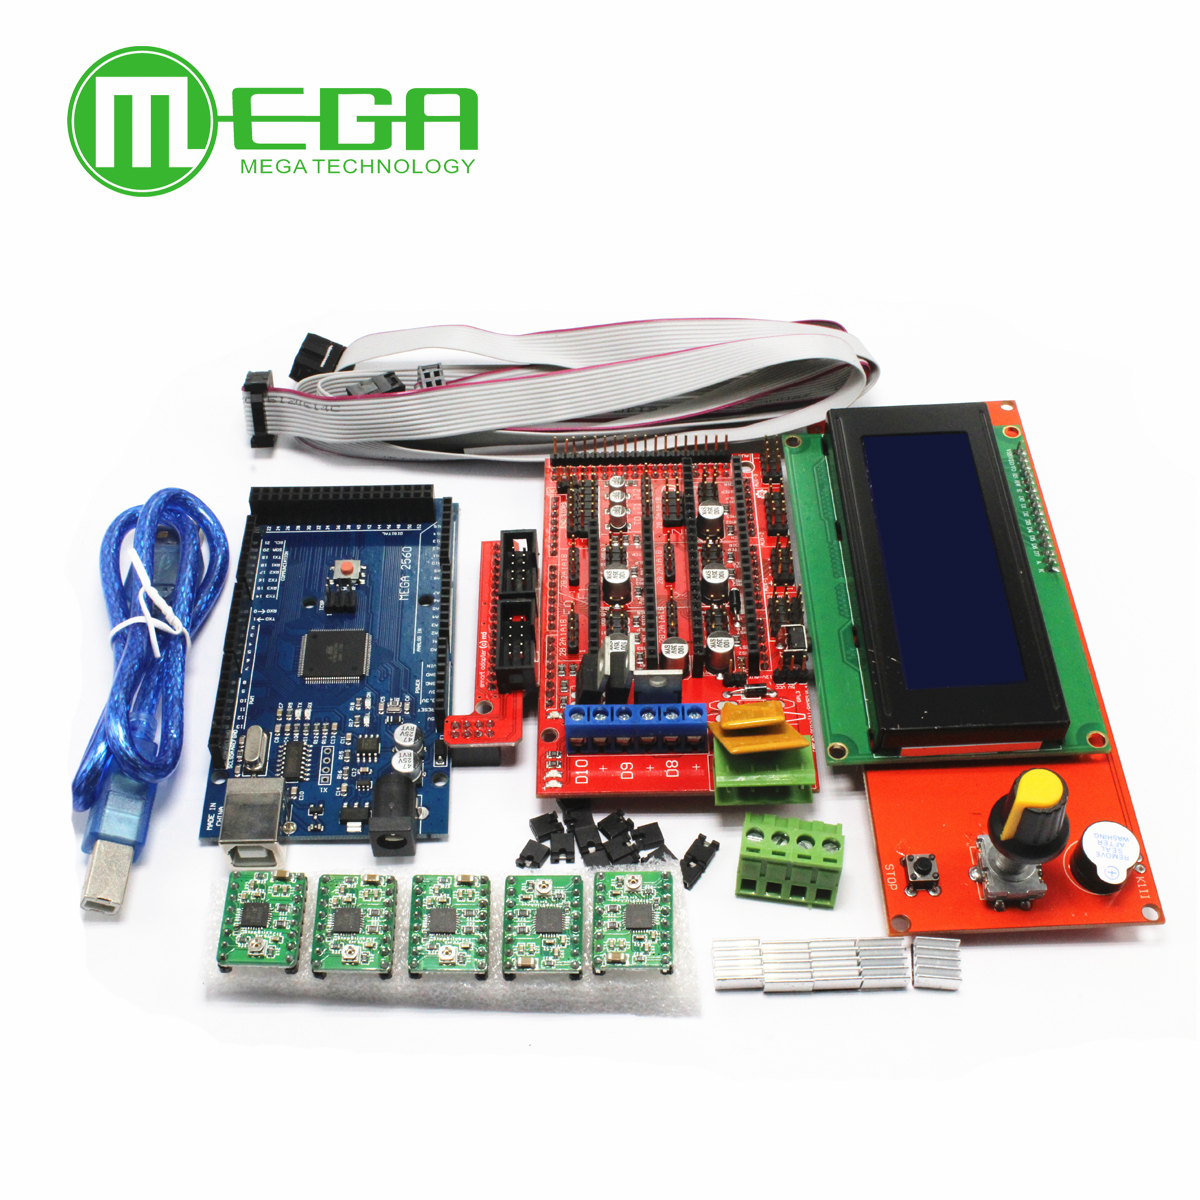 Lm386 Super Mini Audio Amplifier Electronic Kit Circuit Board Schematic Using Laser Diode And Low Voltage 3d Printer Mega 2560 R3 1pcs Ramps 14 Controller 5pcs A4988 Stepper Driver